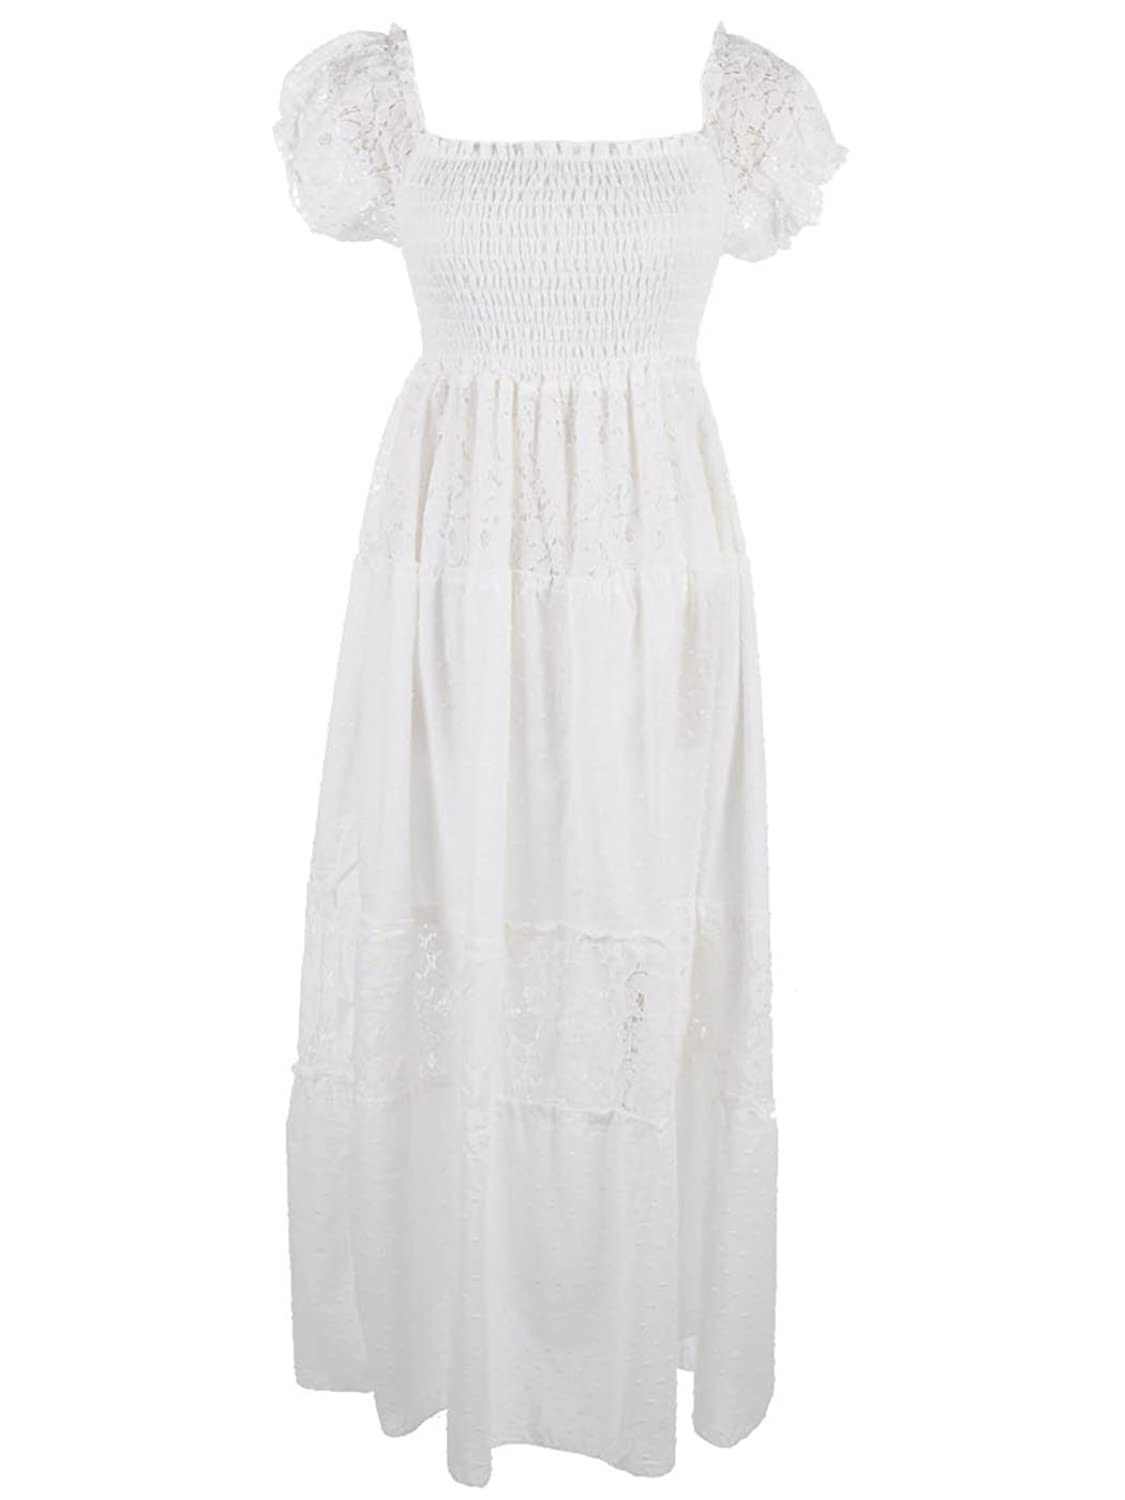 Prairie Inspired Semi-Sheer Long Smocked Dress w Lace  AT vintagedancer.com